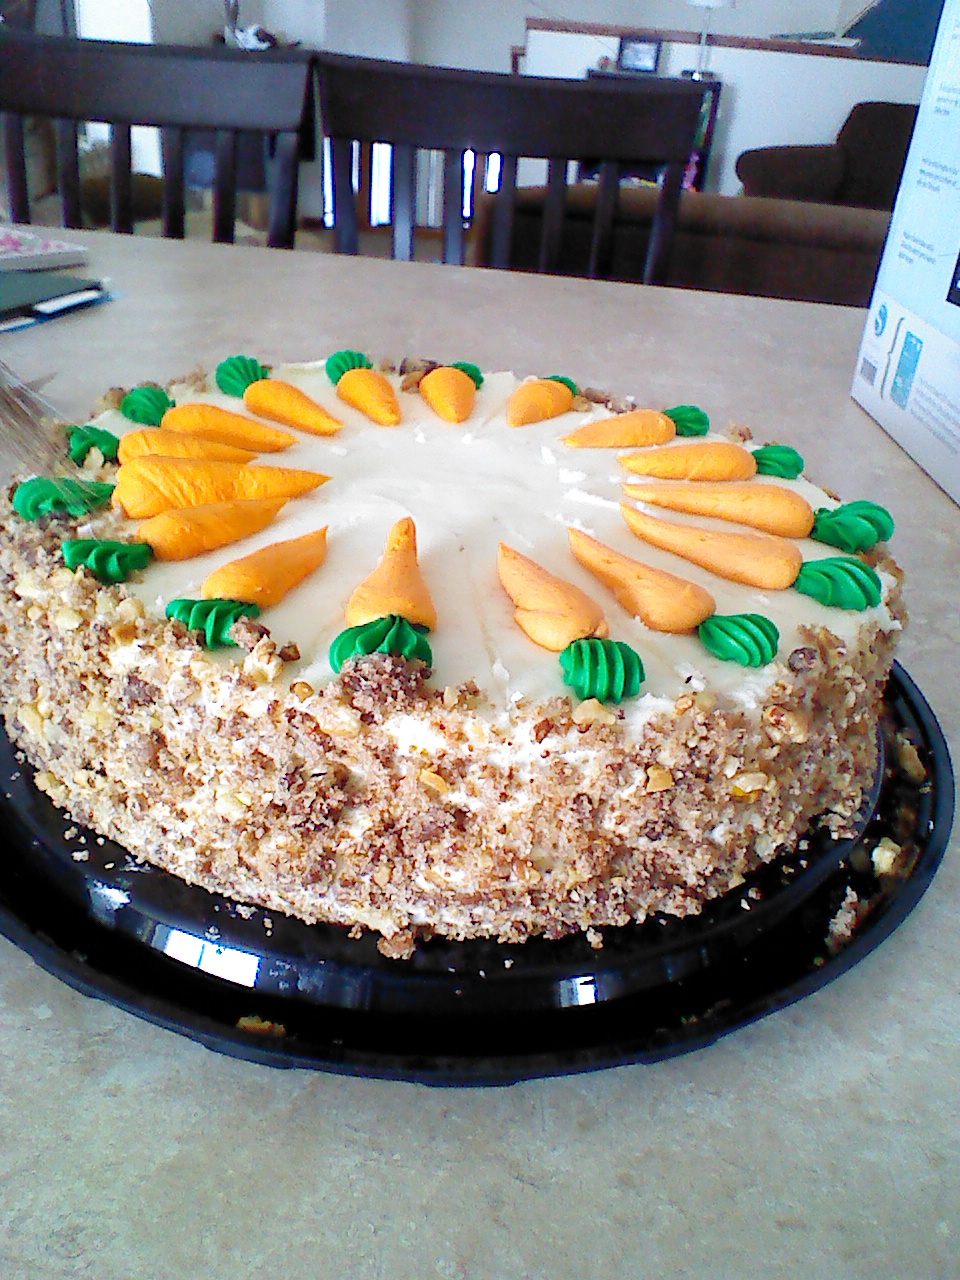 Costco Bakery Cake Images